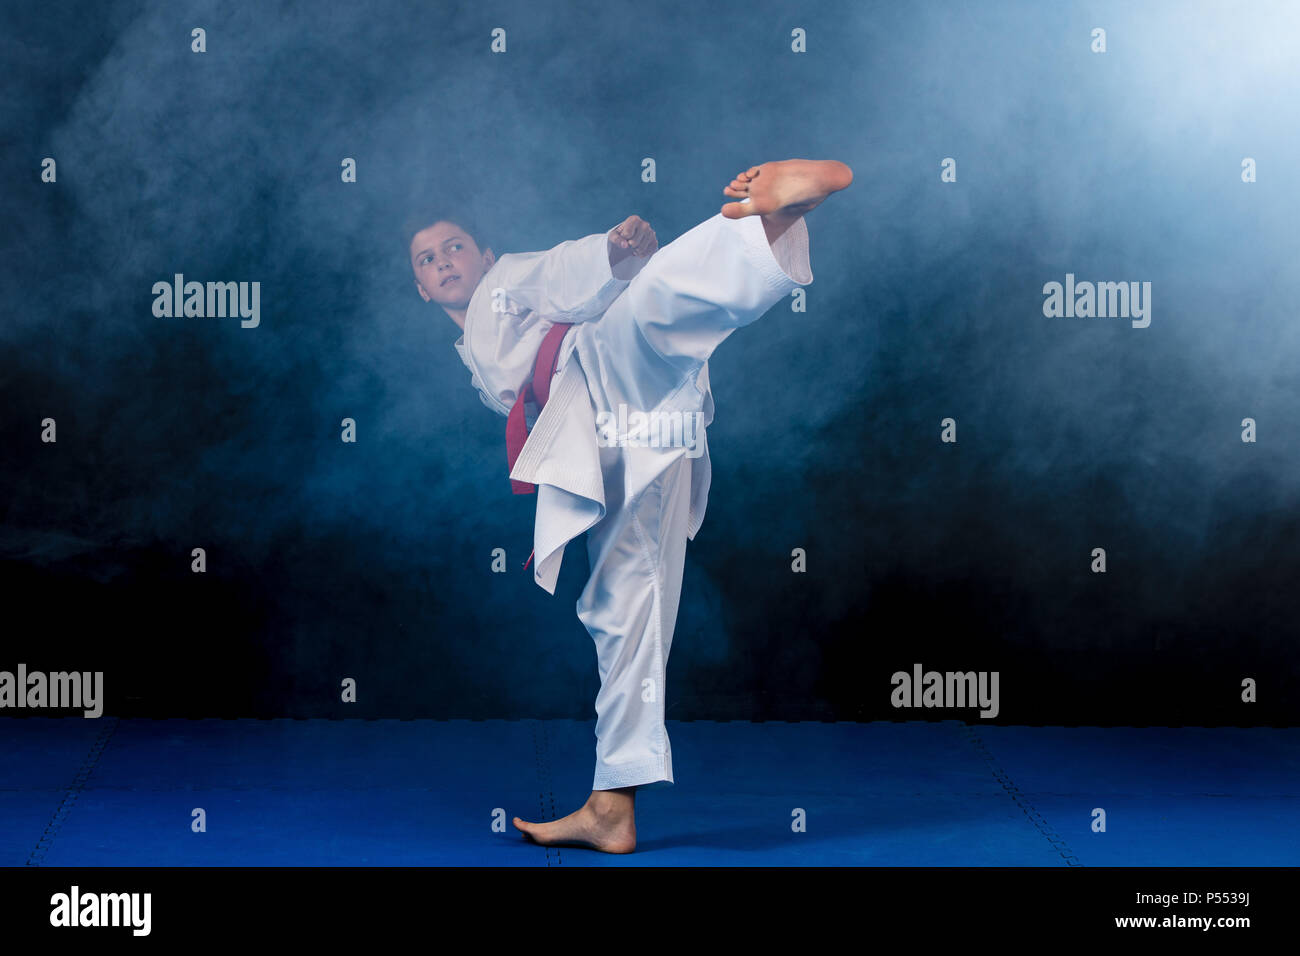 Pre-teen boy doing karate on a black background with smoke Stock Photo